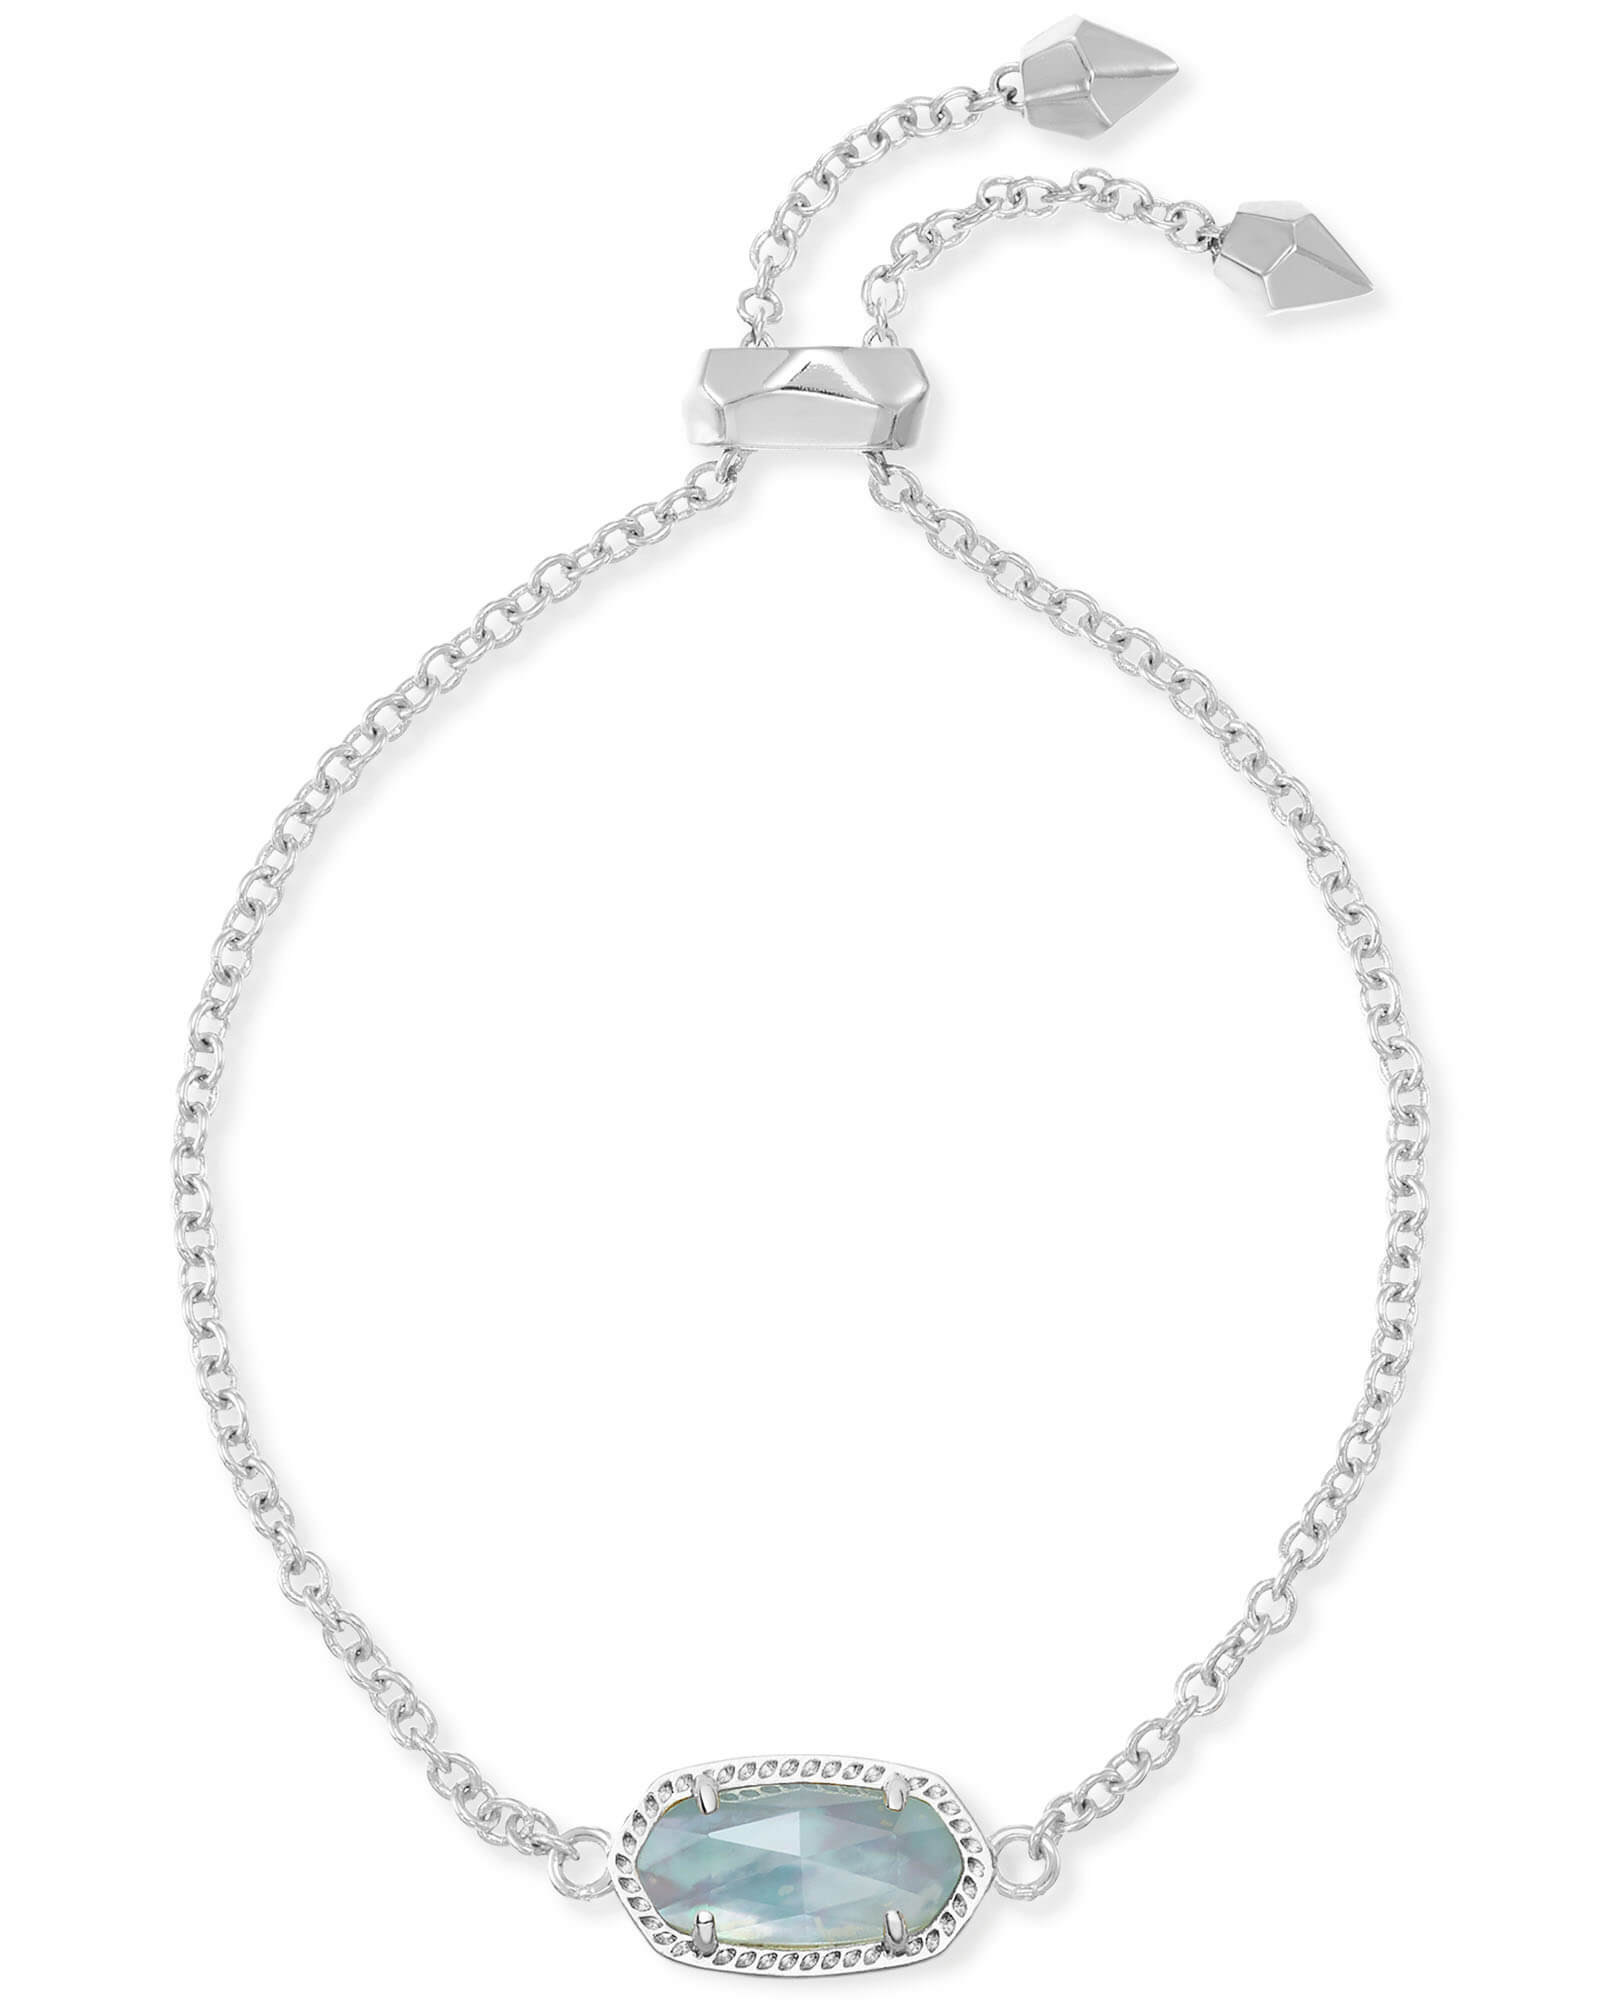 Elaina Silver Adjustable Chain Bracelet in Light Blue Illusion